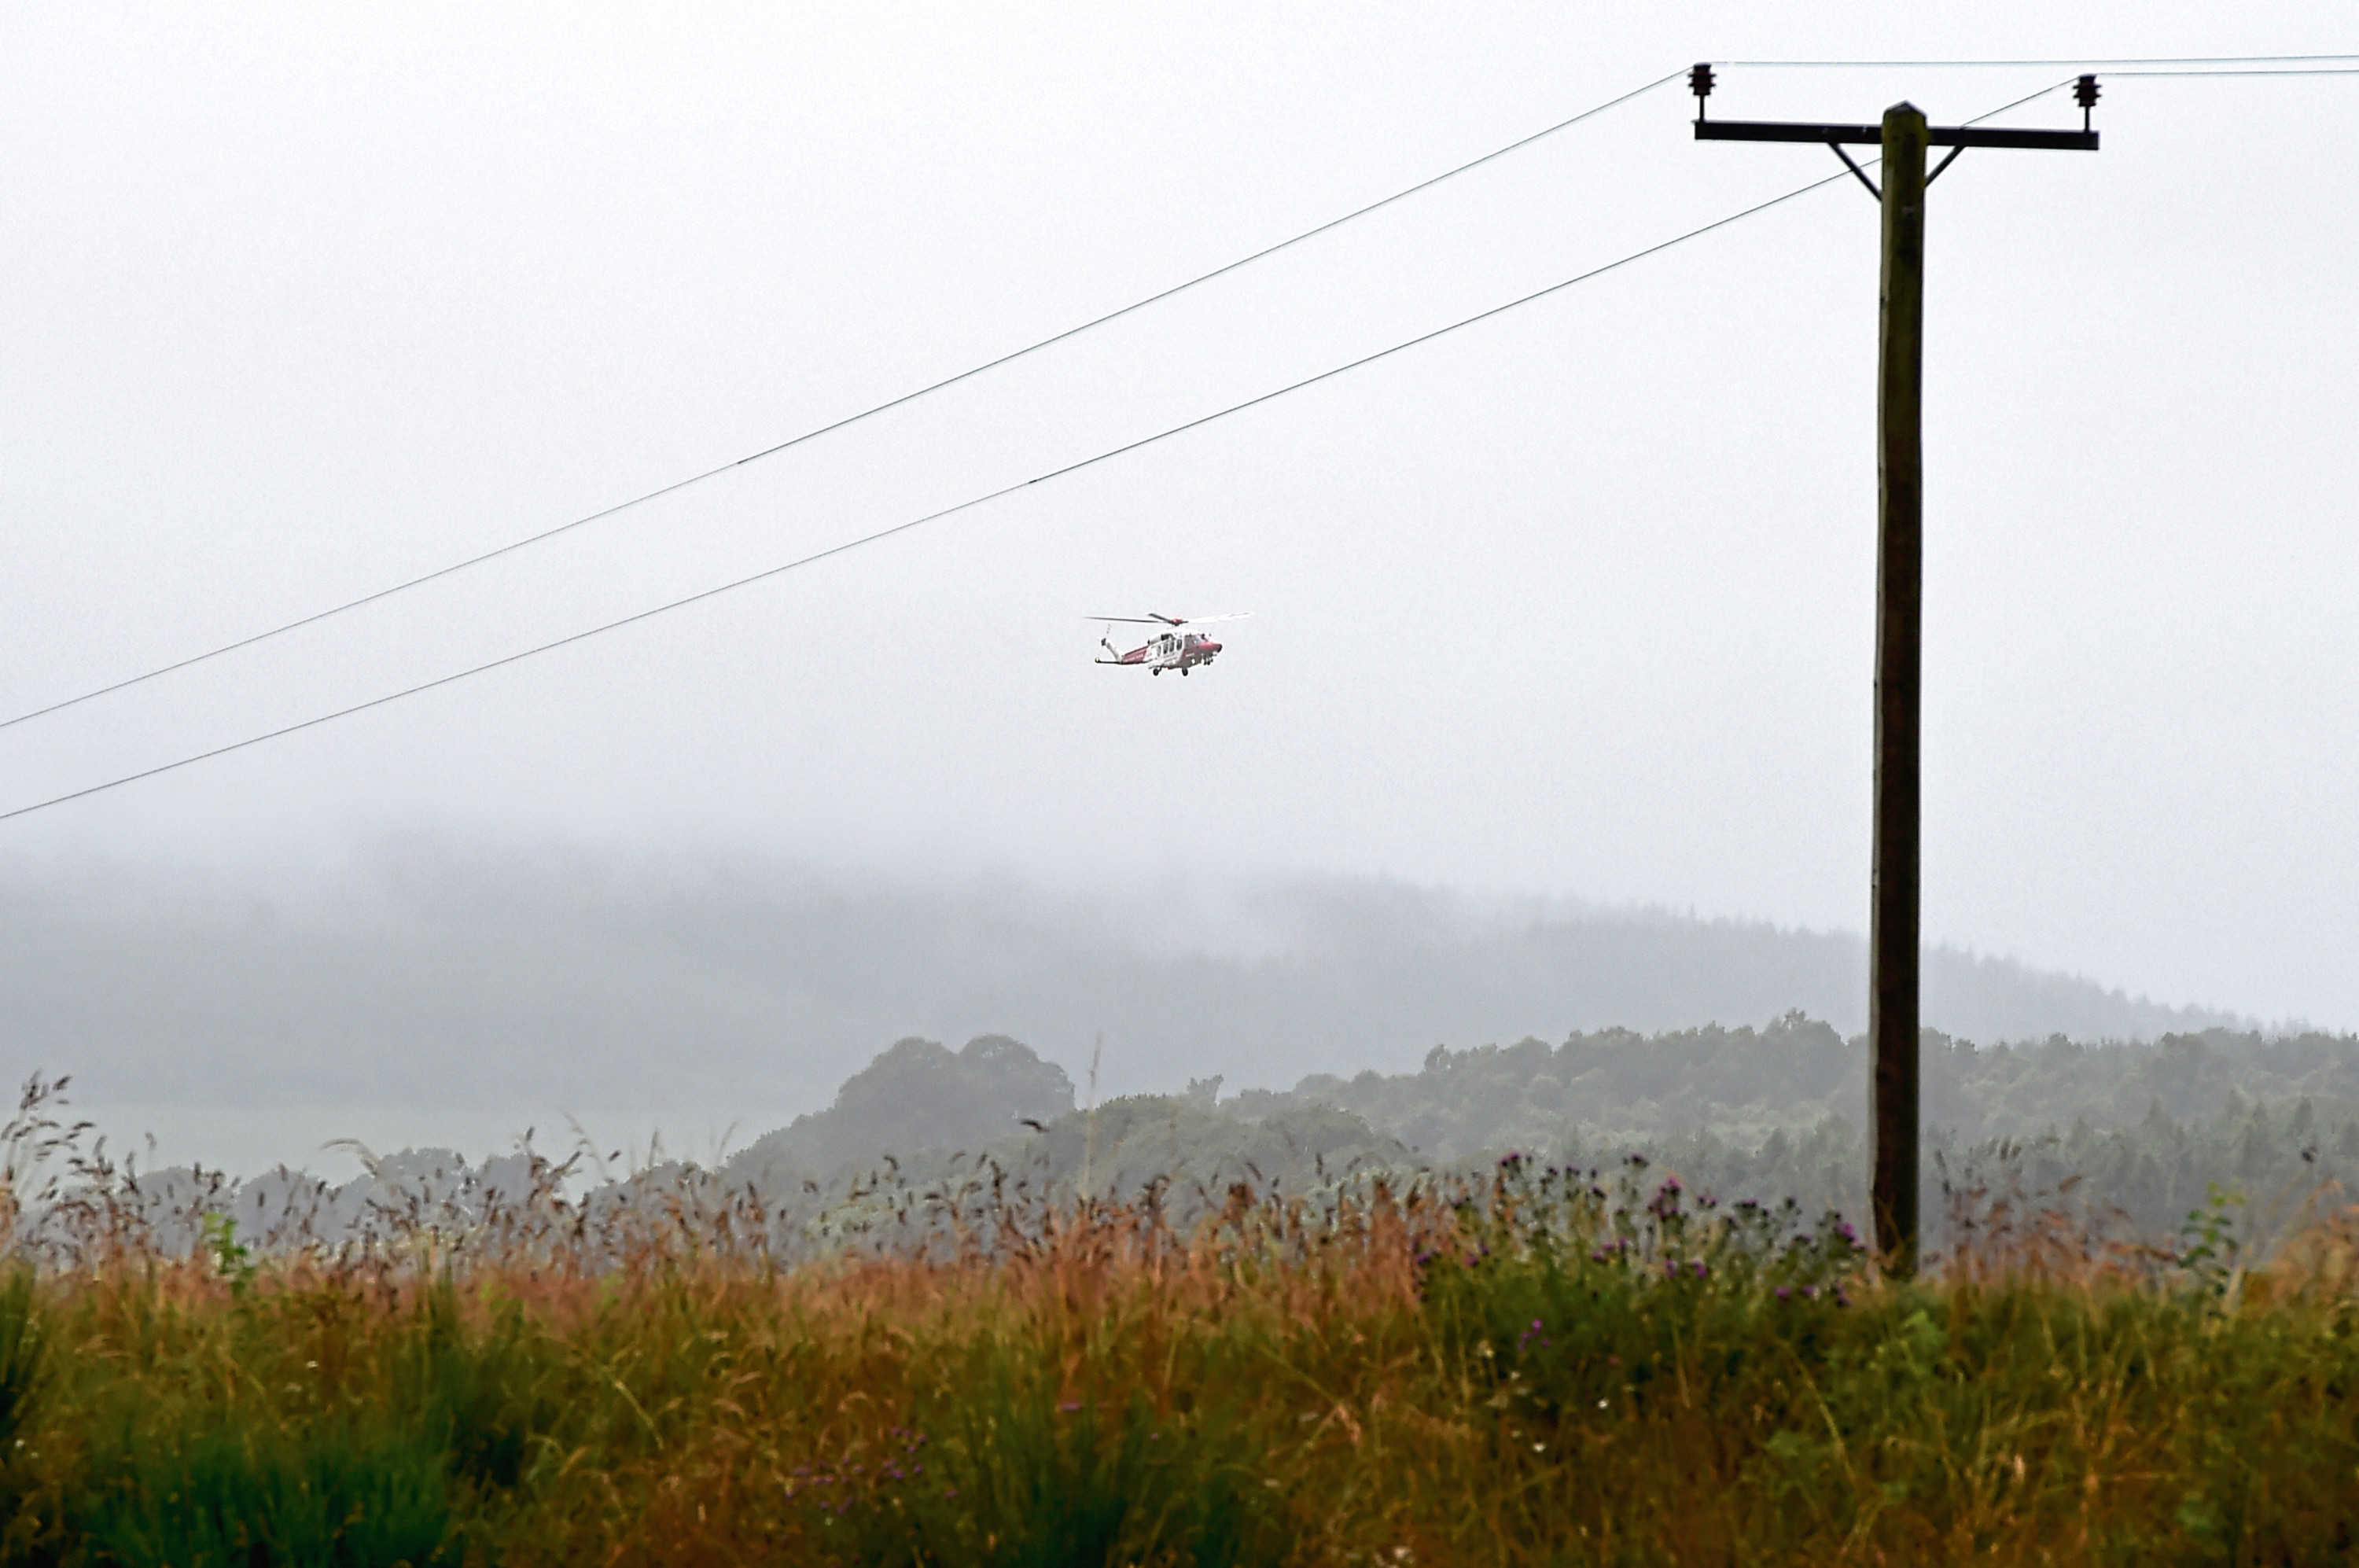 A Coastguard search and rescue helicopter was drafted in to assist with the search